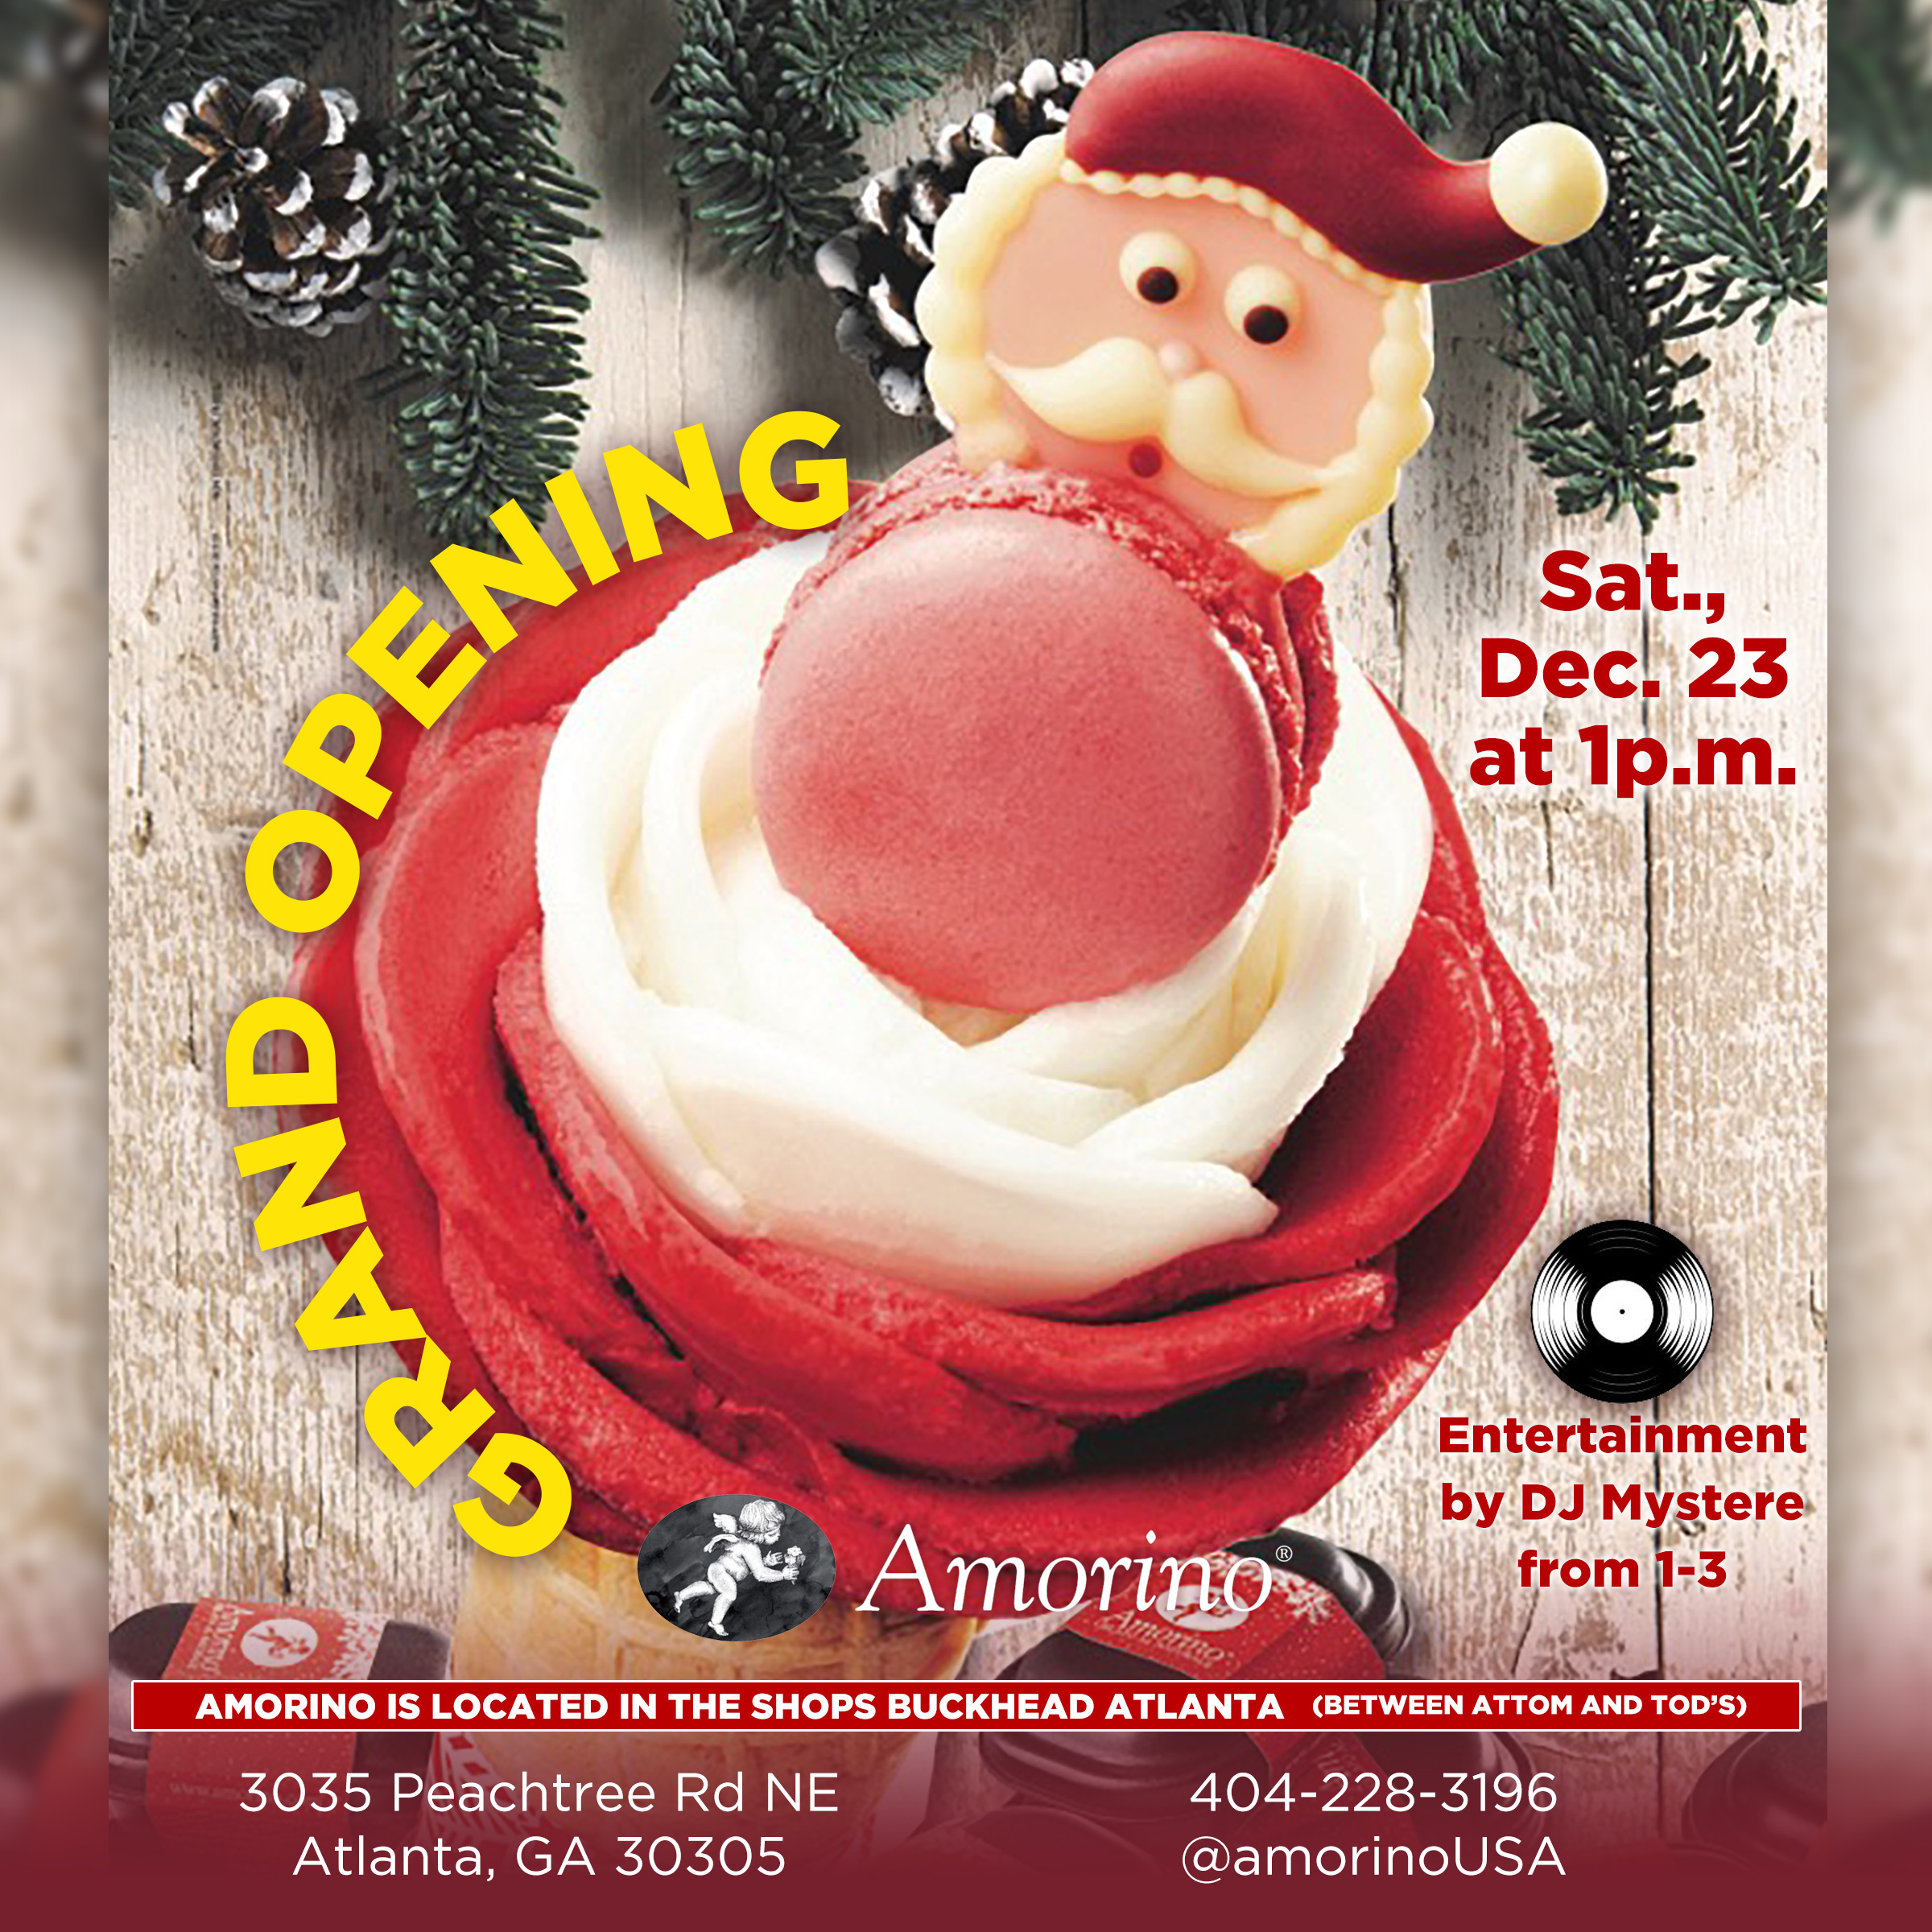 Amorino-Holiday_flyer_2.jpg